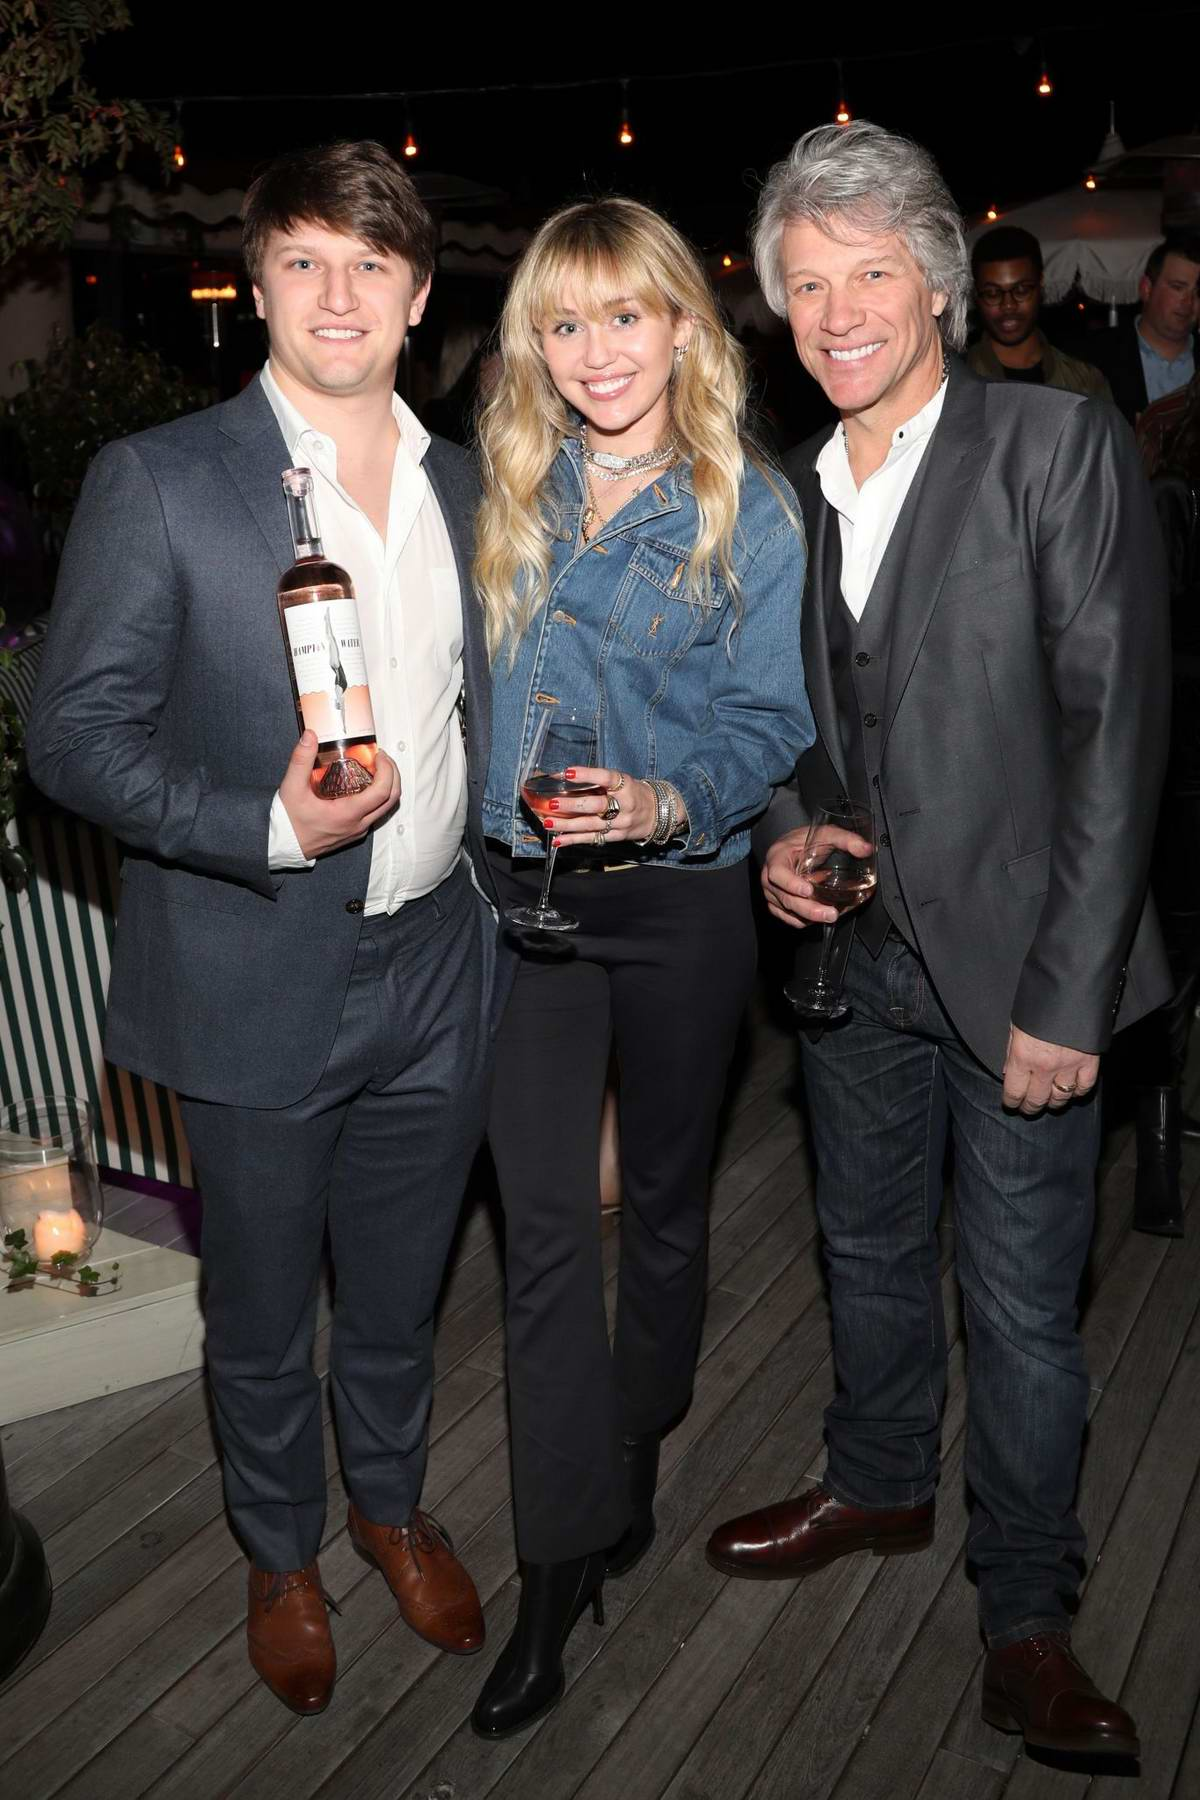 Miley Cyrus attends the Hampton Water Rosé Celebrates LA Launch at Harriet's Rooftop in West Hollywood, California